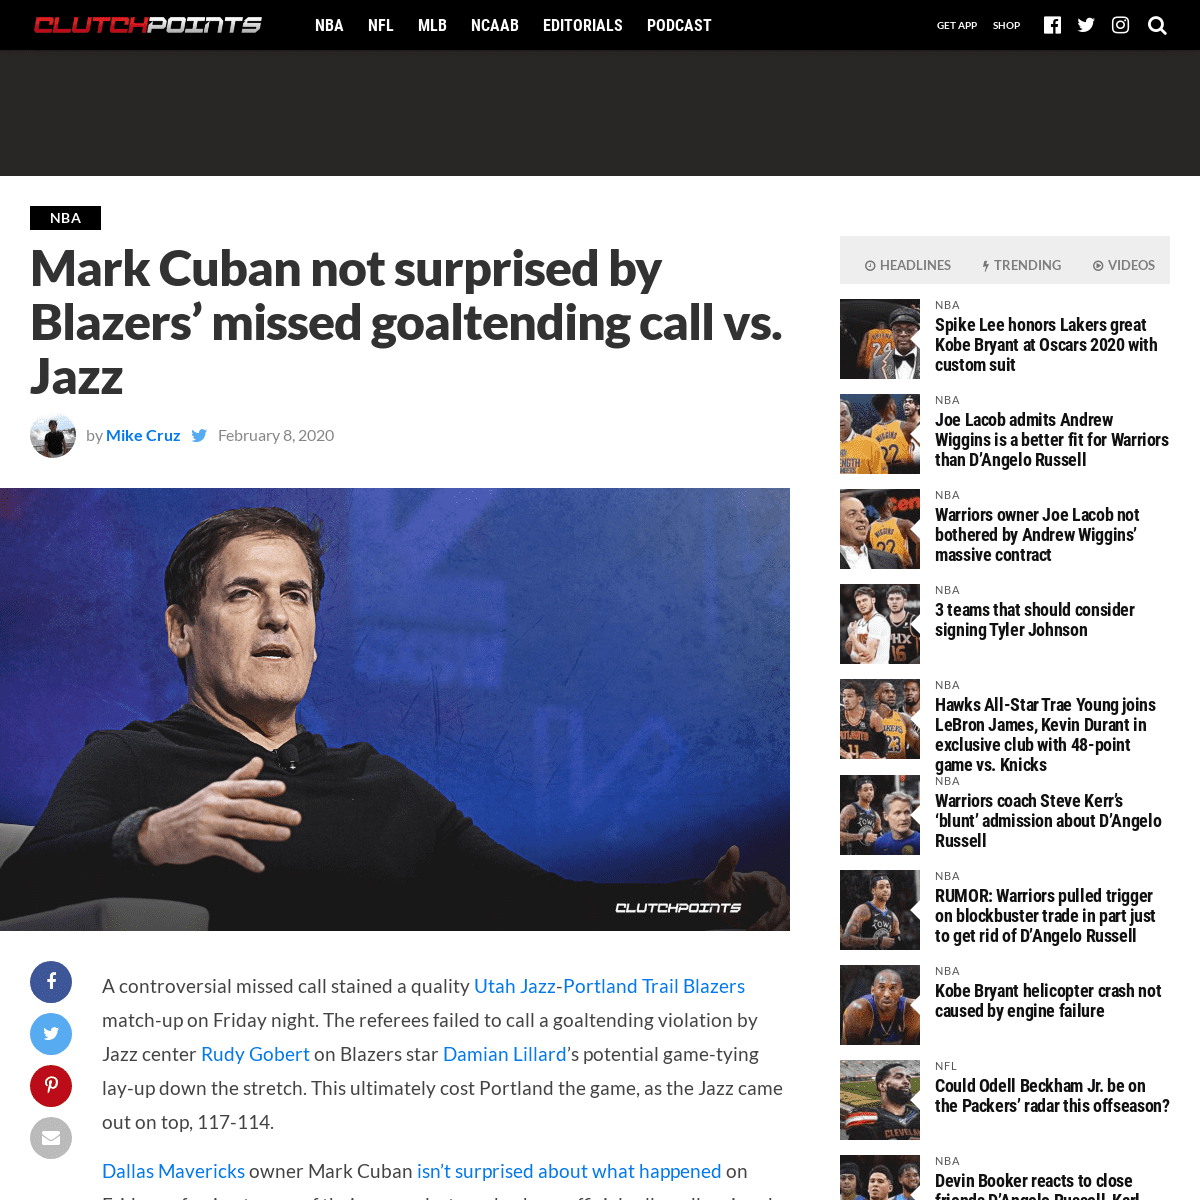 ArchiveBay.com - clutchpoints.com/blazers-news-mark-cuban-not-surprised-by-missed-goaltending-call-vs-jazz/ - Blazers news- Mark Cuban not surprised by missed goaltending vs. Jazz